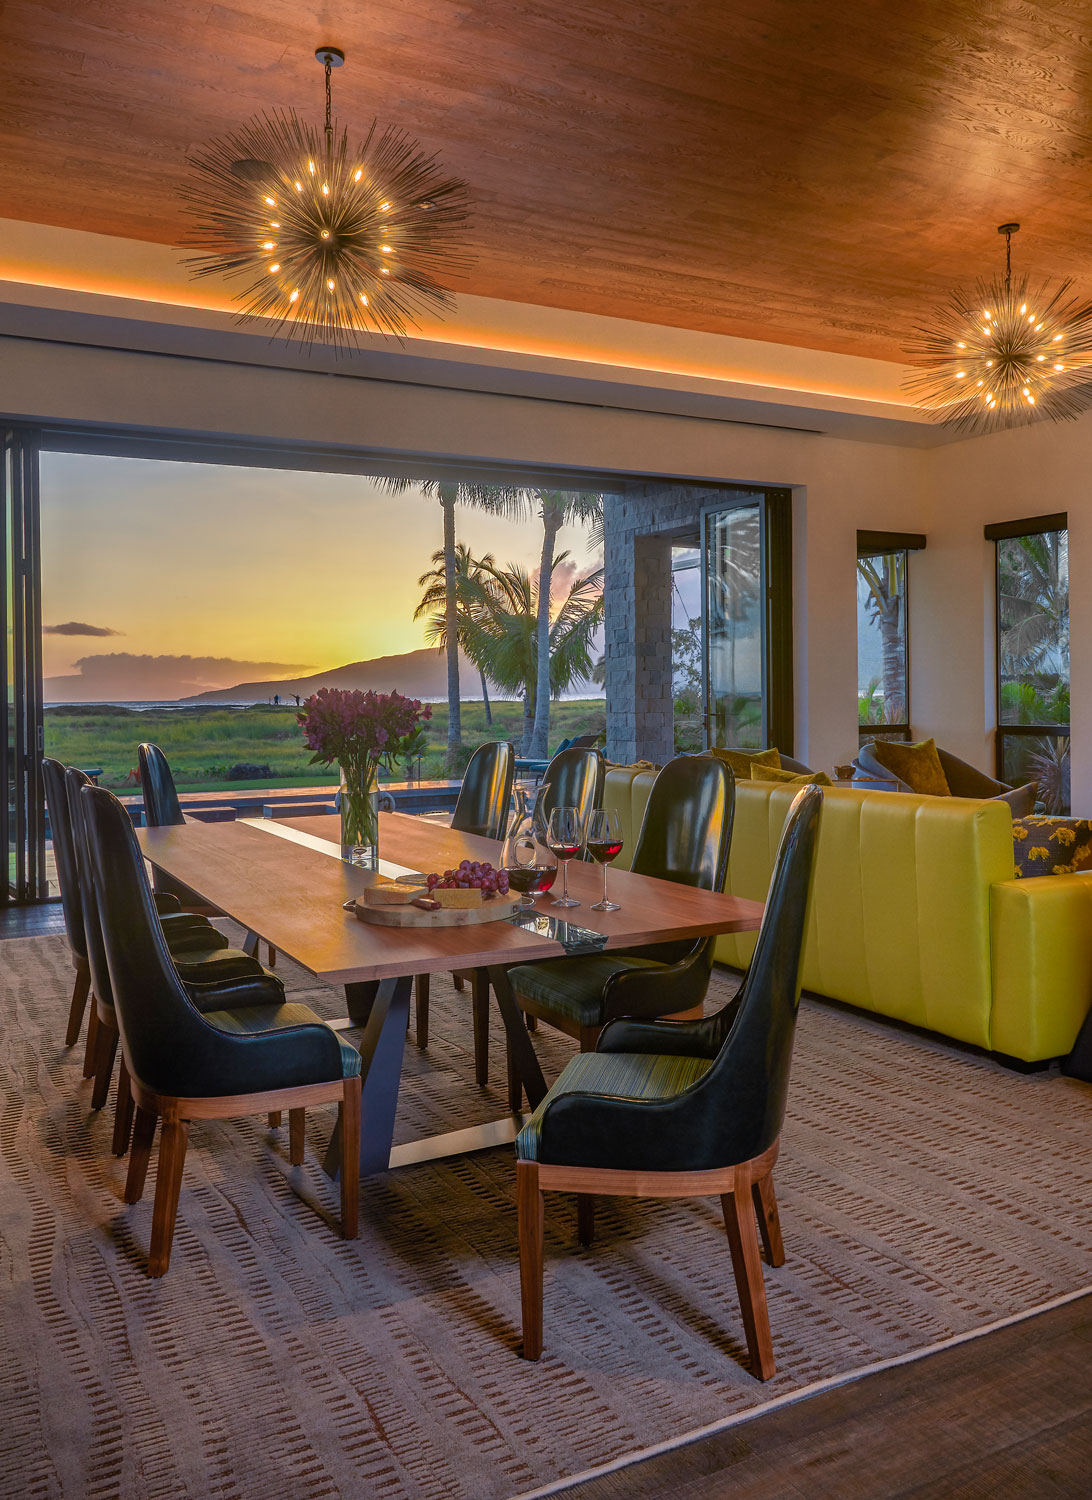 Wogan_Design_Interior_Design_Maui_008